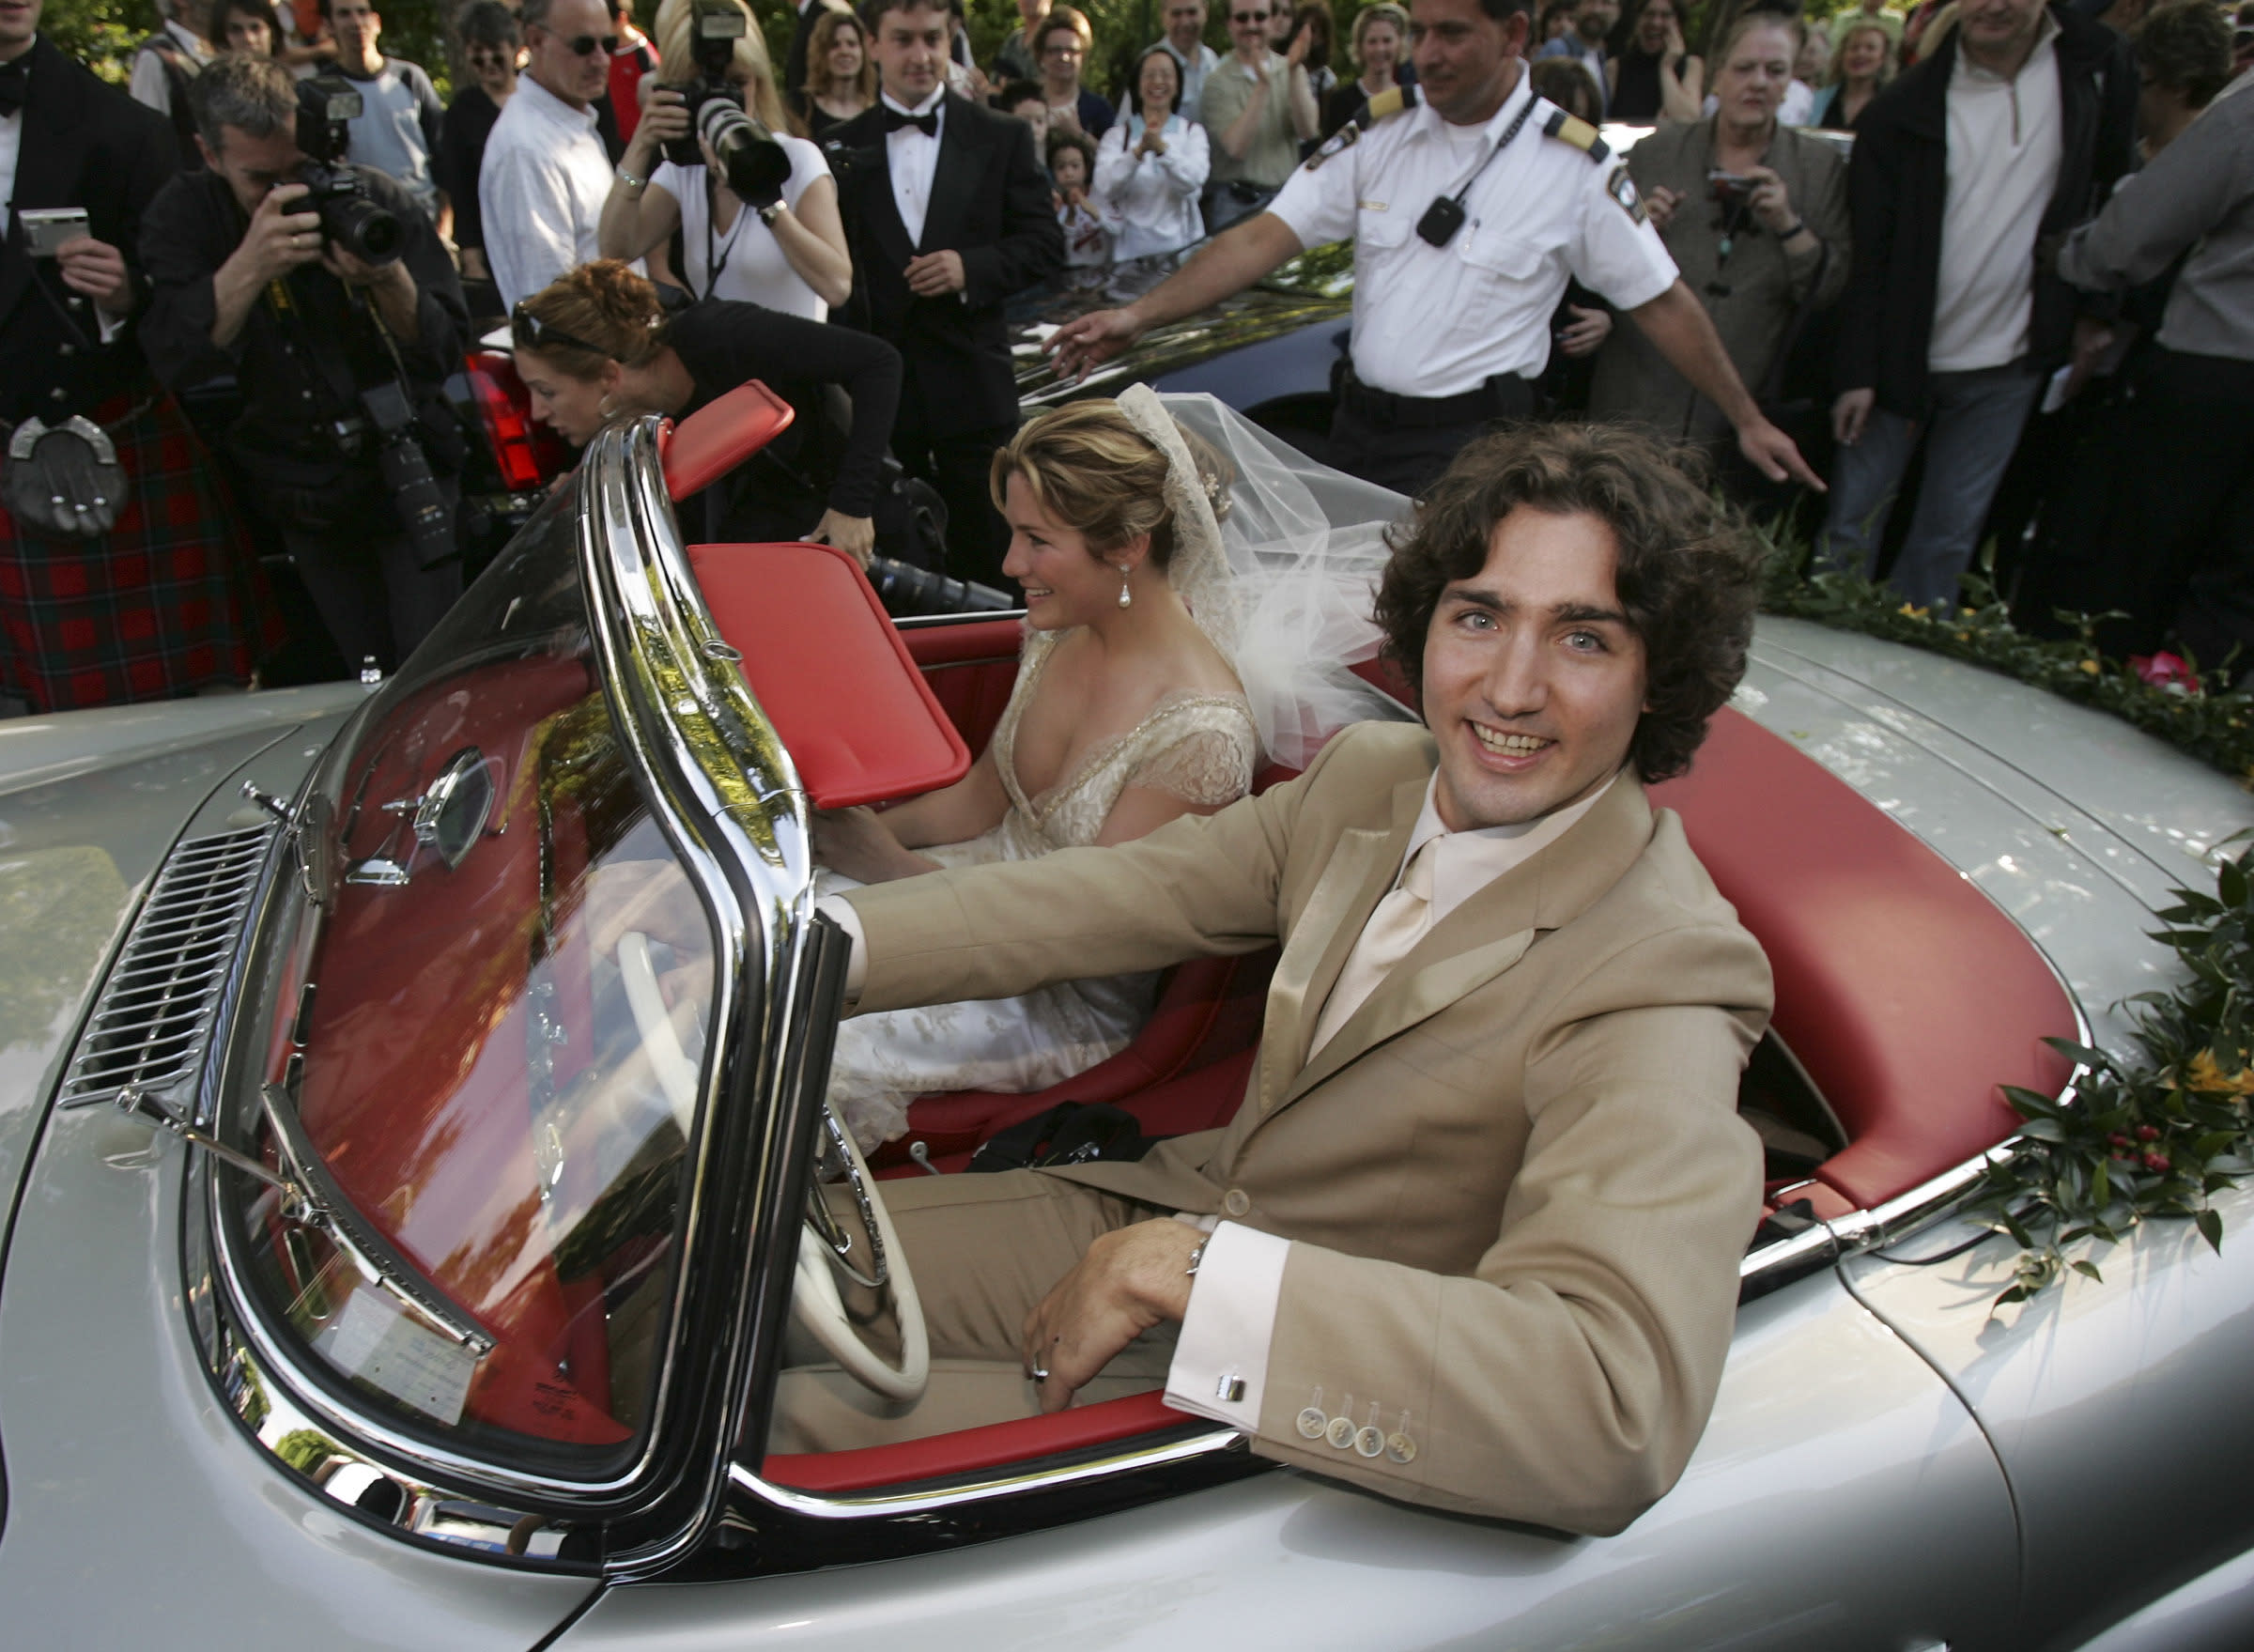 <p>Justin Trudeau and bride Sophie Gregoire leave the Sainte-Madeleine D'Outremont Church, Montreal, after their wedding ceremony here, May 28, 2005. The car a 1959 Mercedez 300SL, was Pierre Trudeua's car and was recently renovated and given its original silver grey colour.</p>  <p>(Bernard Weil/Toronto Star via Getty Images)</p>